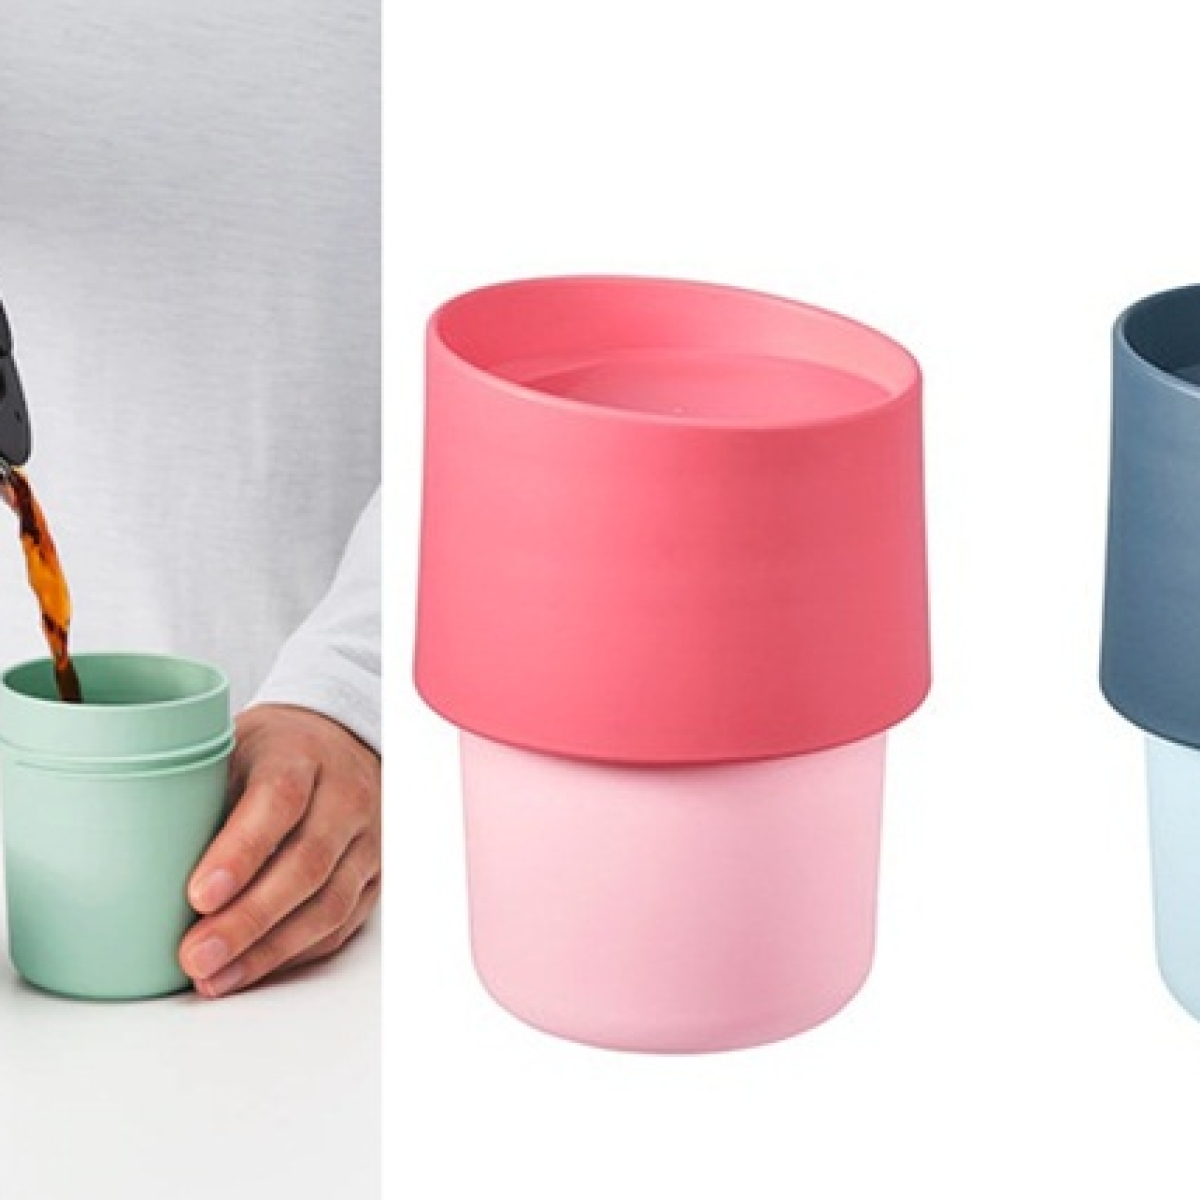 Ikea UAE recalls 'Made in India' travel mugs over concern that it may contain harmful chemicals